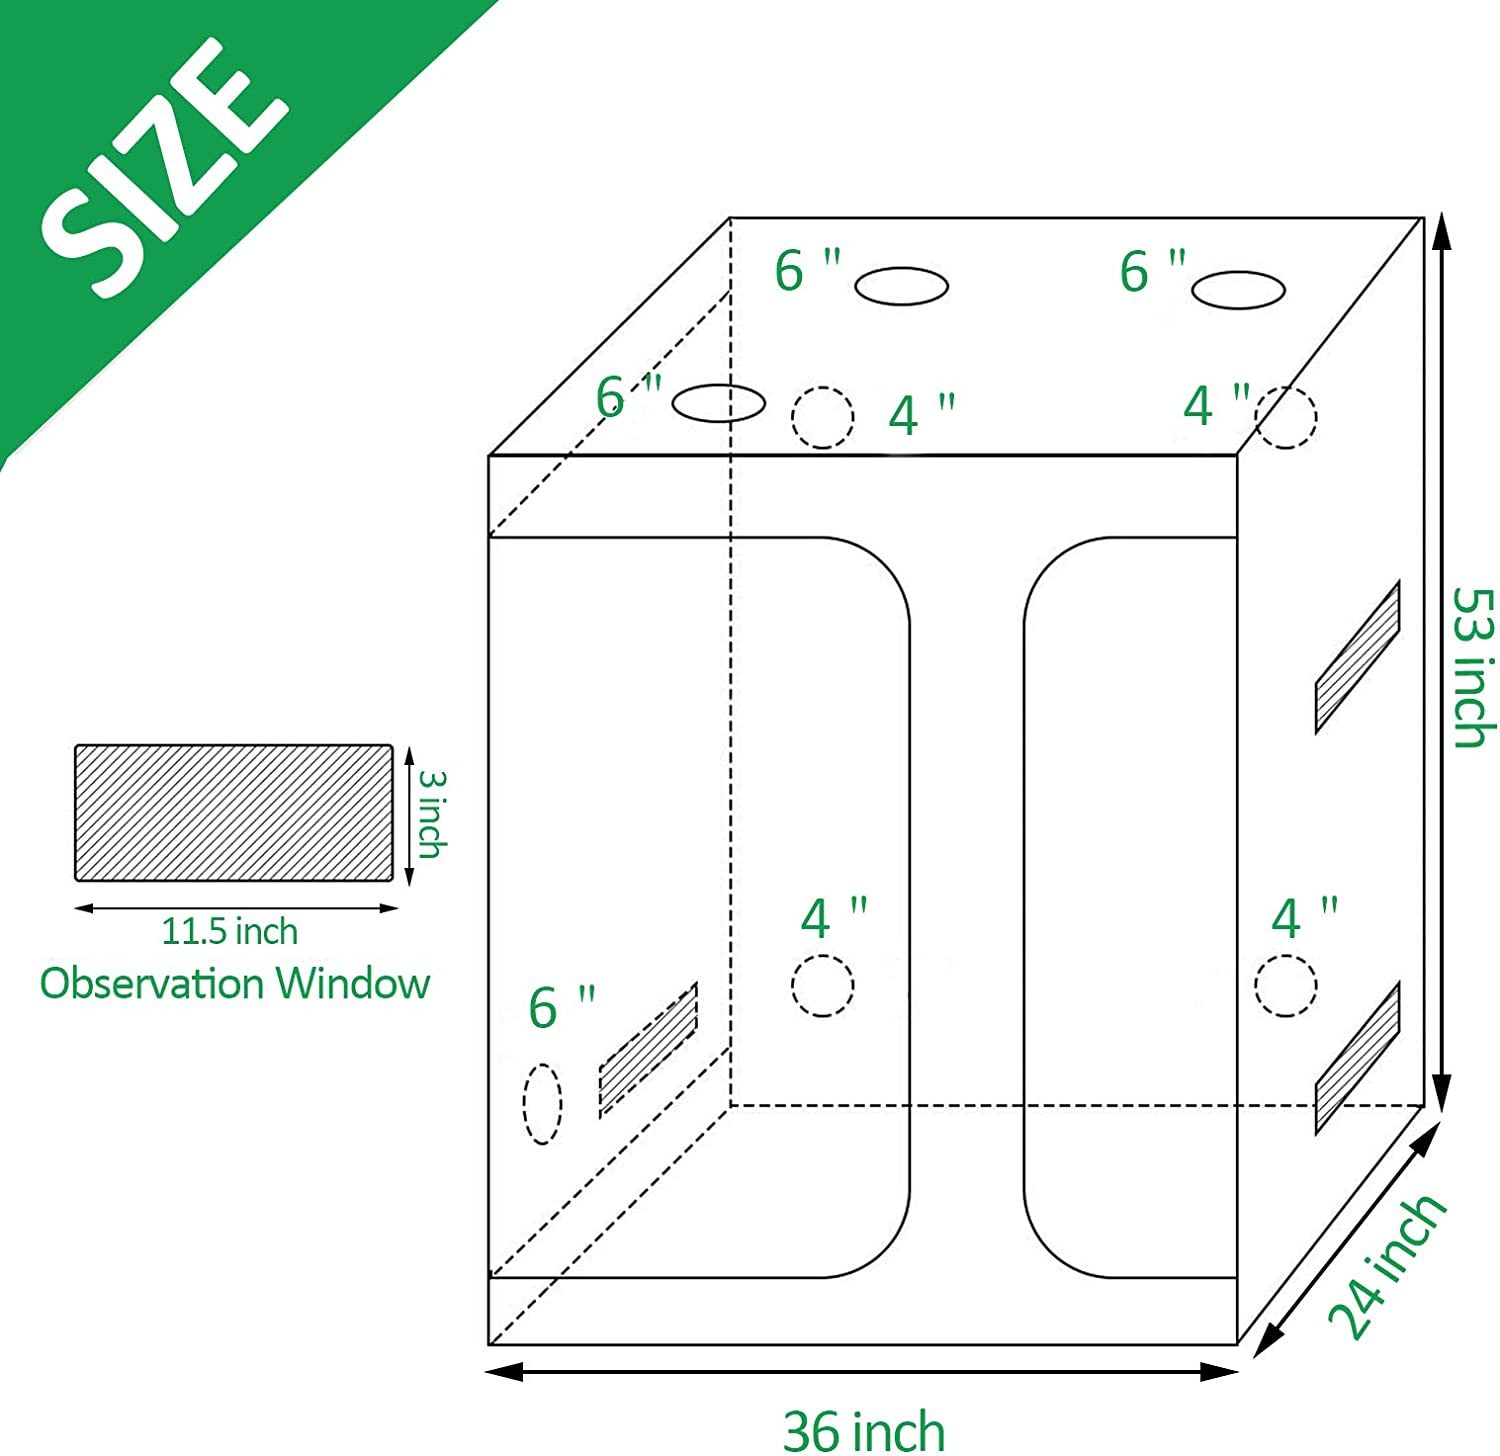 36 x 24 x 53 inch Indoor Growing System with Observation Window Tool Bag Flowers Lovinouse 2 in 1 Mylar Hydroponic Grow Tent Grow Tent Kit for Vegetables